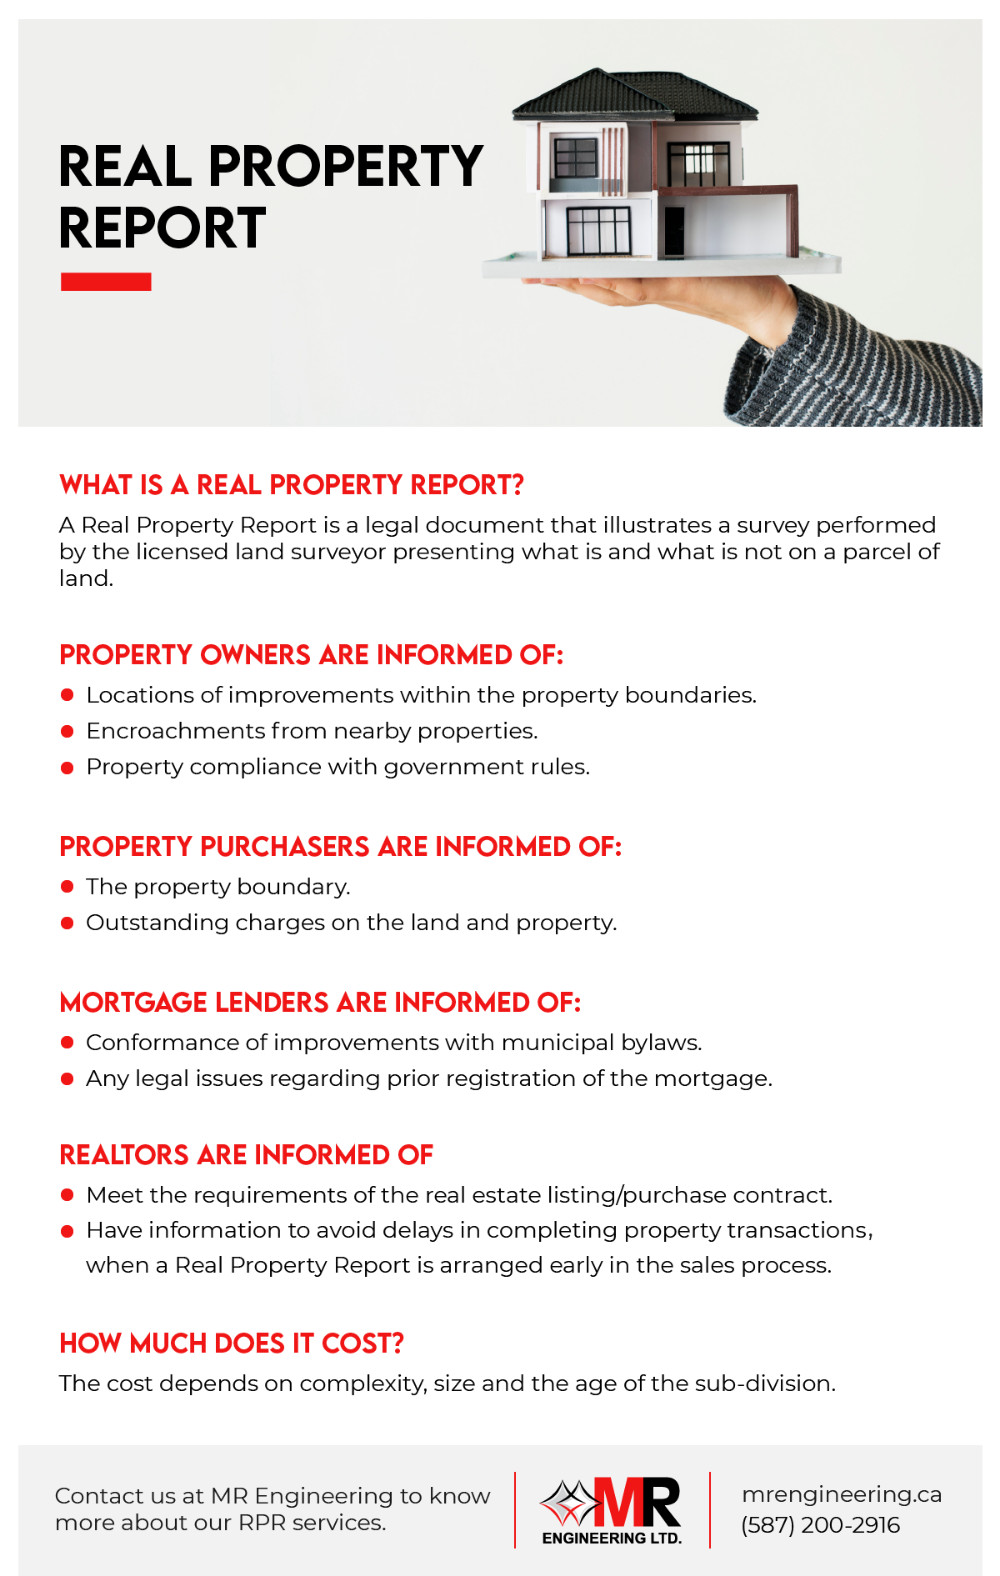 Real Property Report